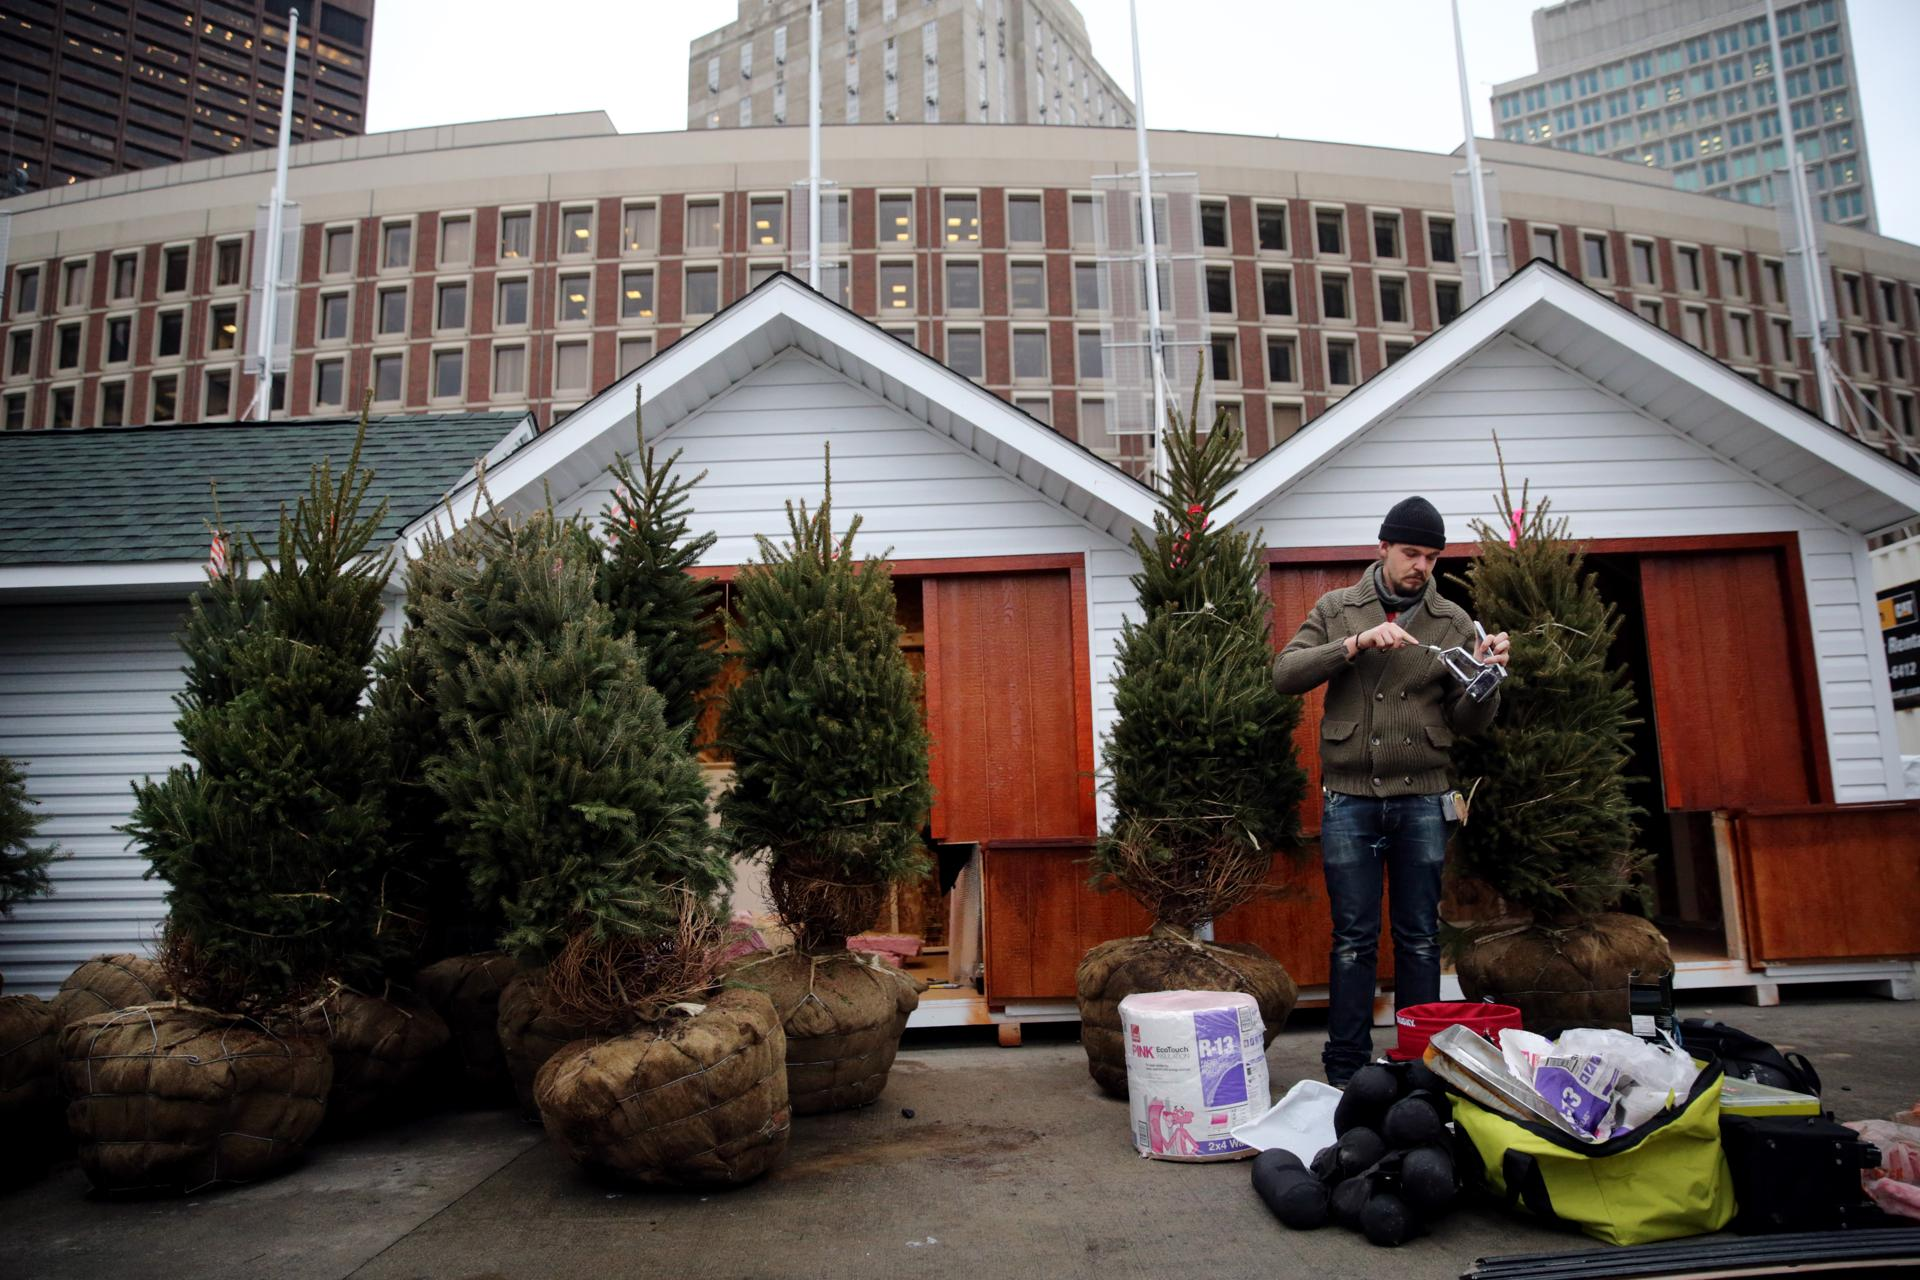 Sam Underkofler of Brothers Artisan Oil was surrounded by Christmas trees while he winterized the company's chalet.